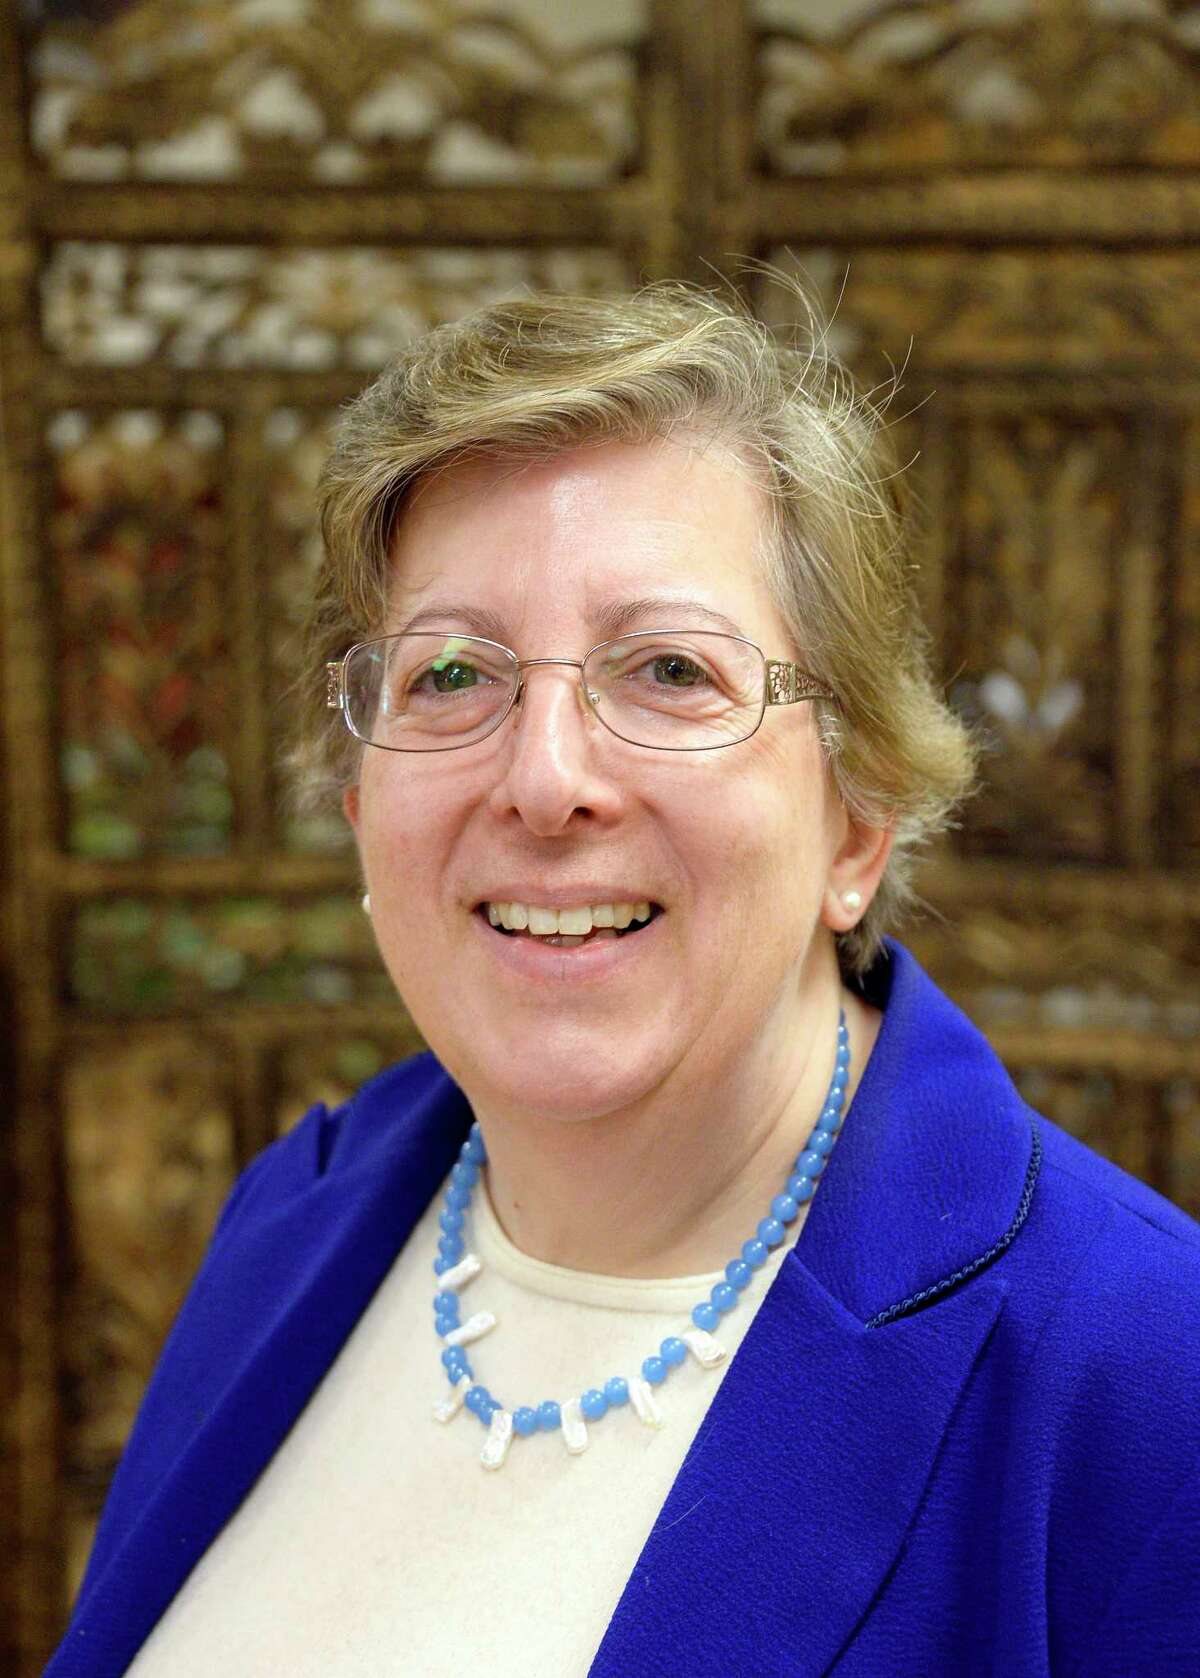 The Rev. Donna Elia at Troy Area United Ministries Thursday May 31, 2018 in Troy, NY. (John Carl D'Annibale/Times Union)